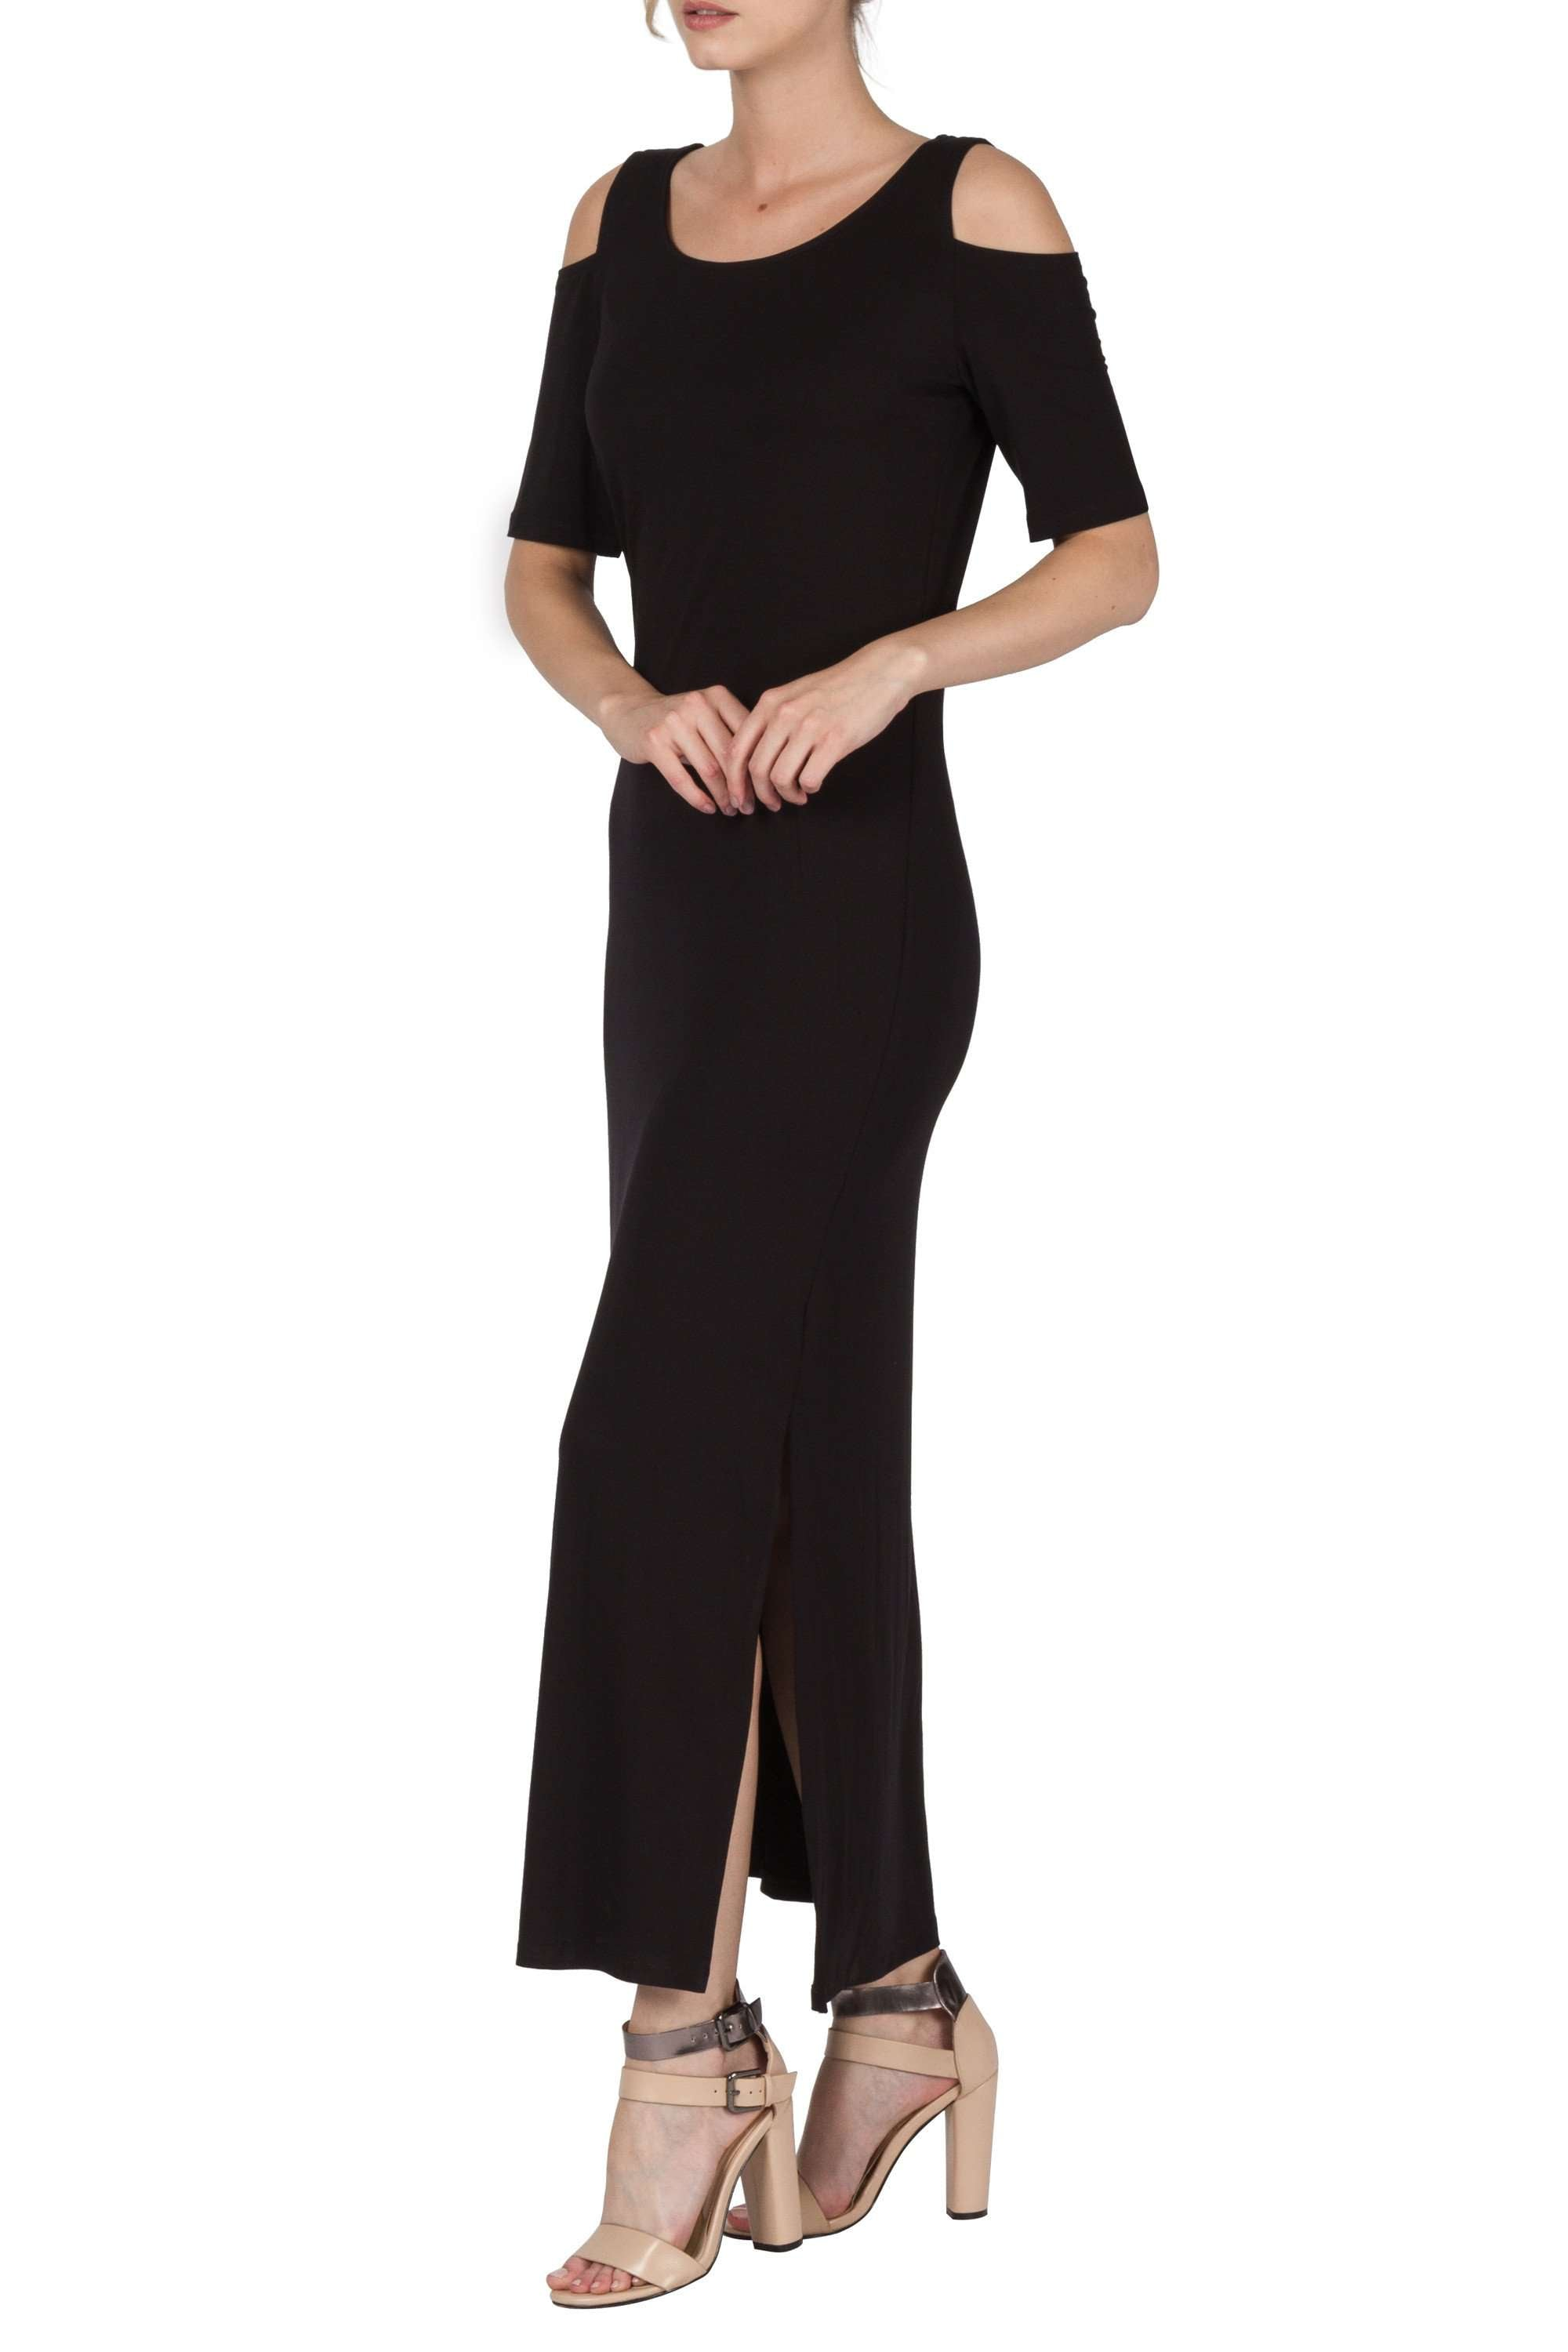 Maxi Dress Black Features Cold Shoulder Detail and Great Fit On Sale Now - Yvonne Marie